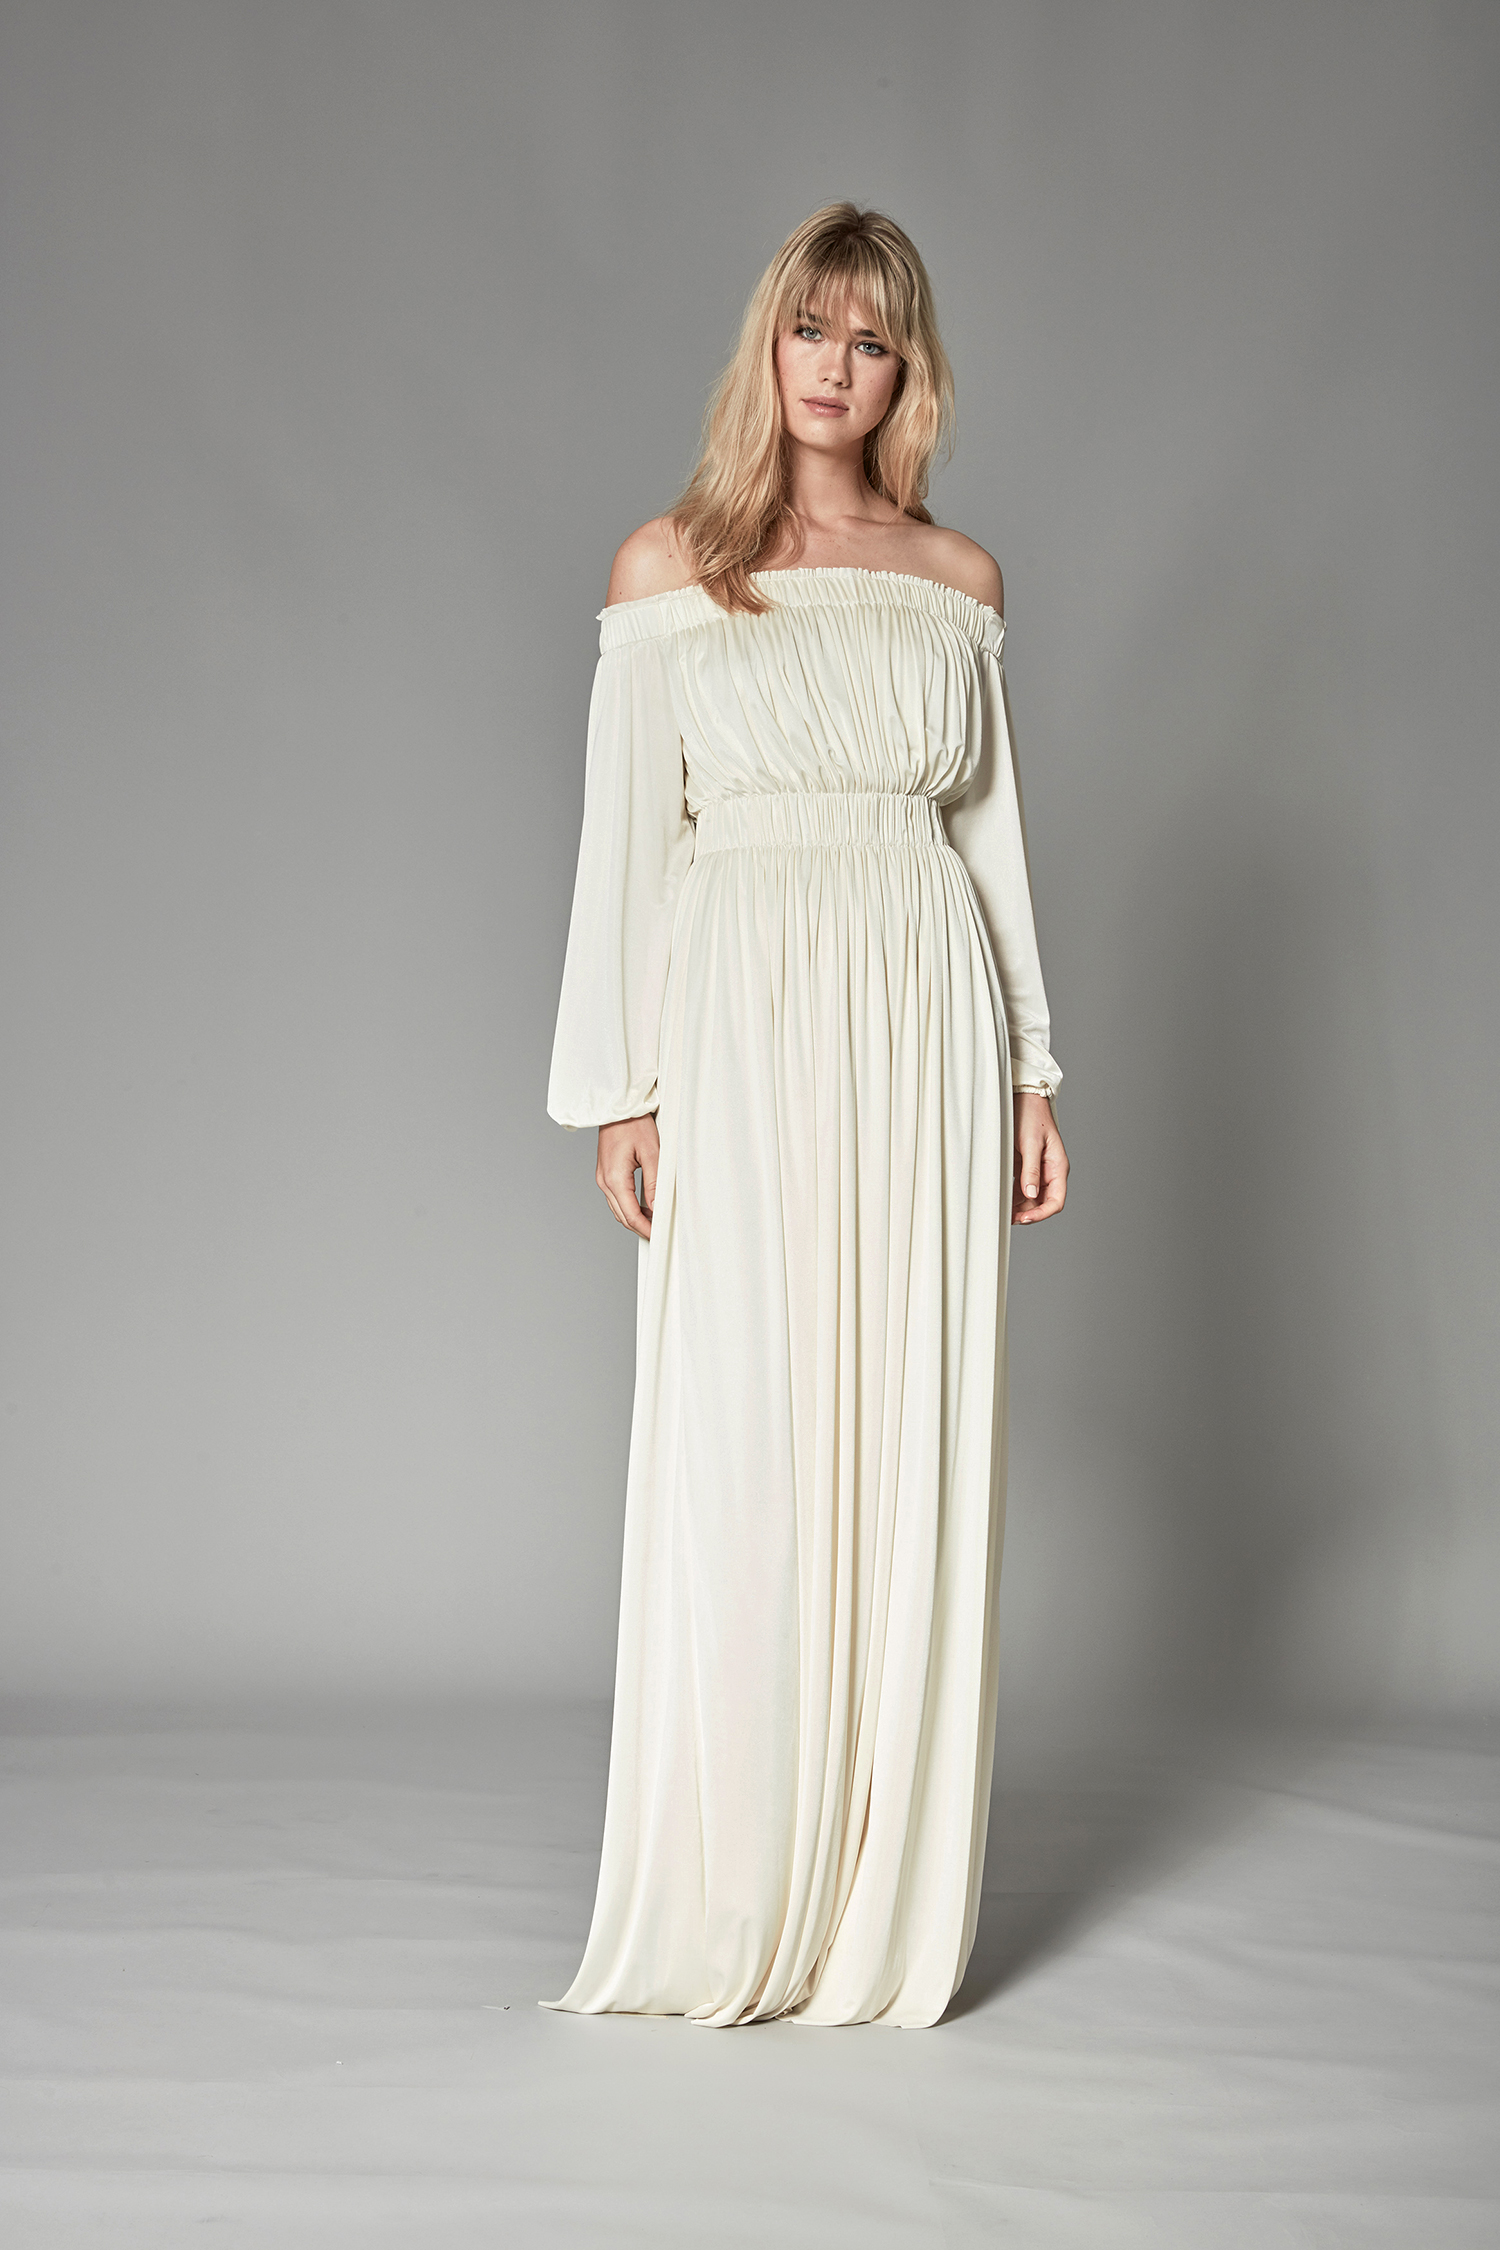 catherine deane fall 2018 off-the-shoulder cinched waist